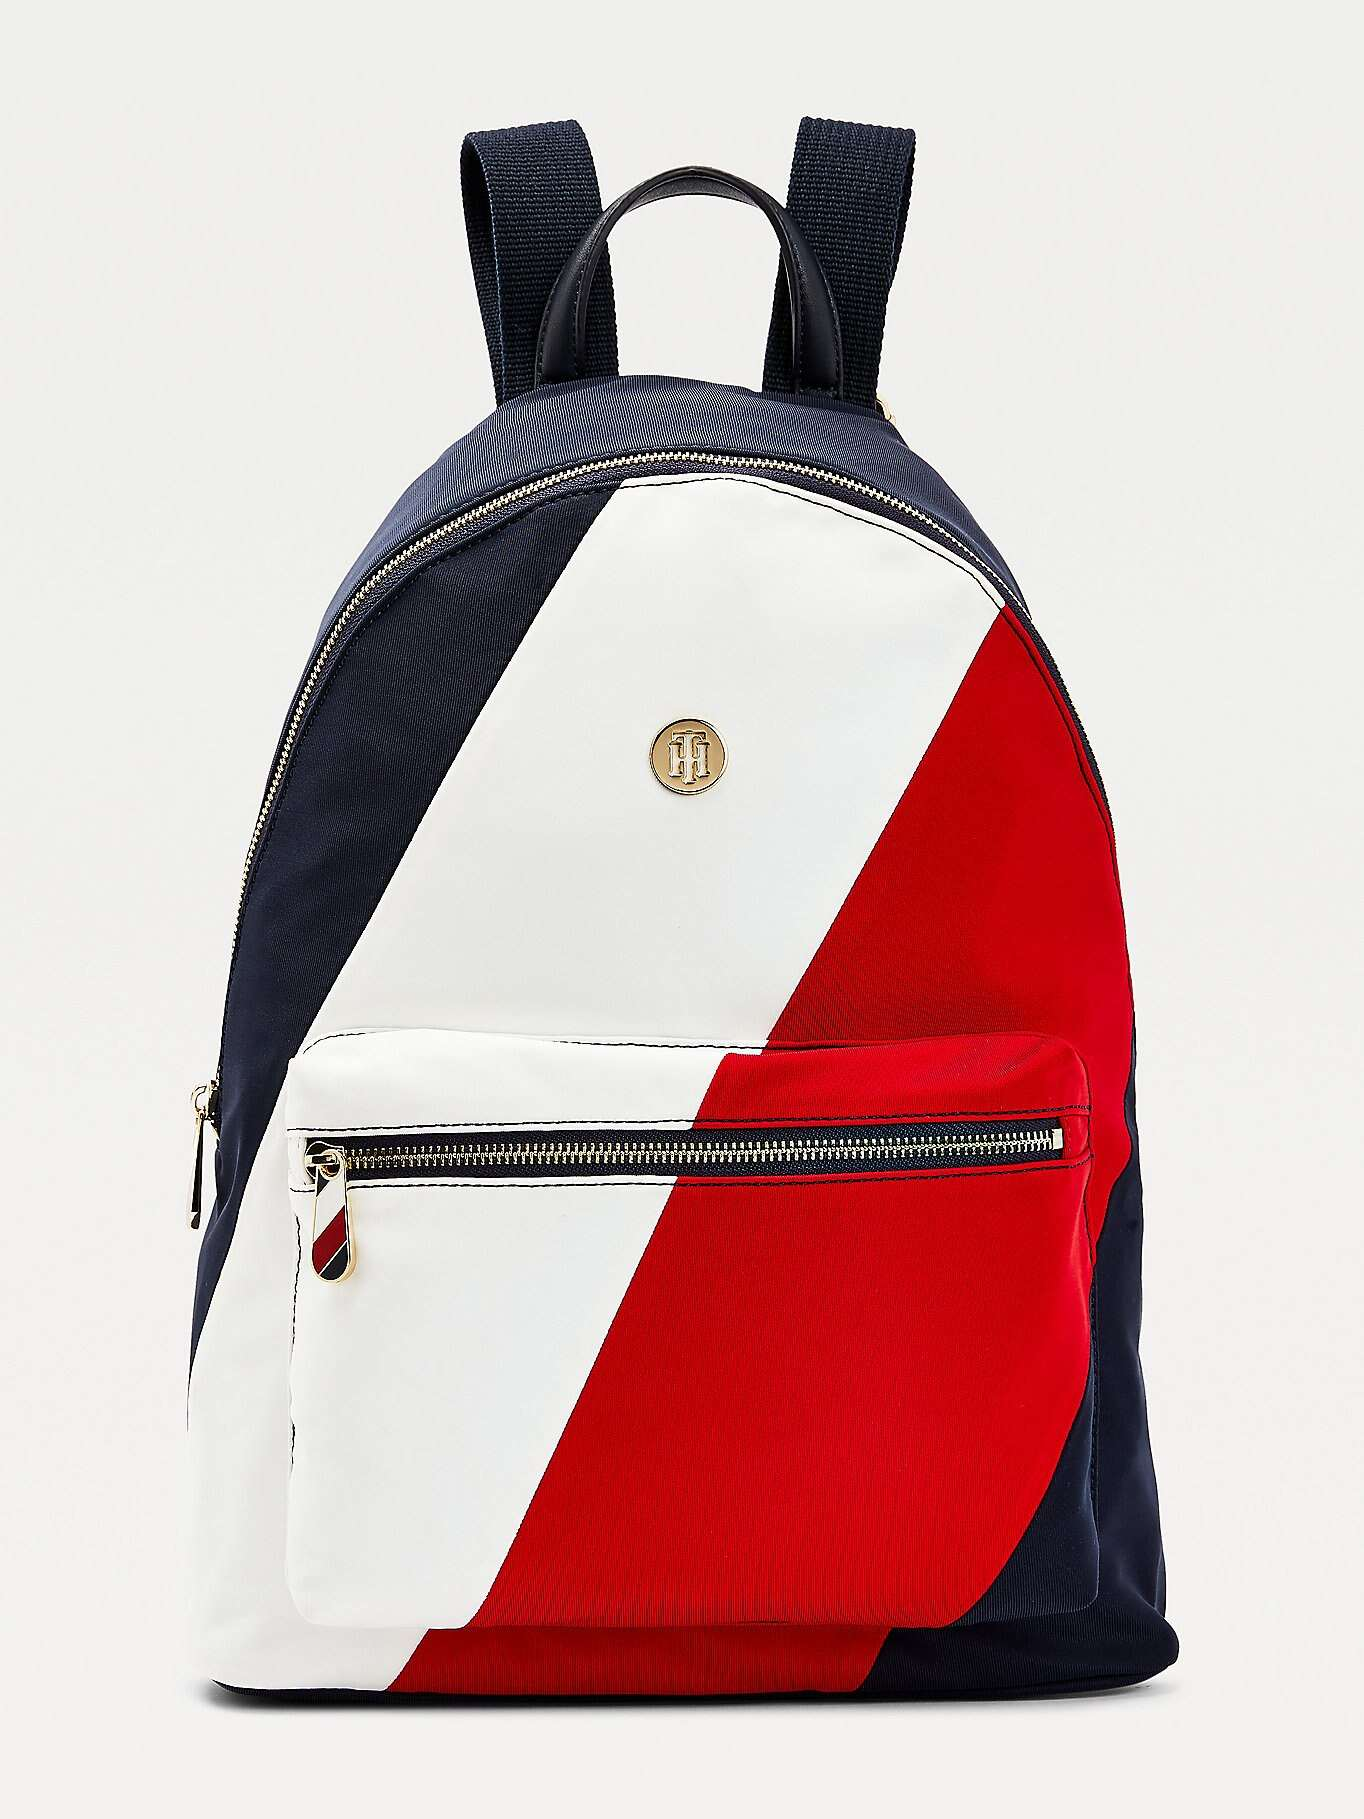 Tommy Hilfiger multicolor backpack Poppy Back Pack Soft Nylon Corporate Mix